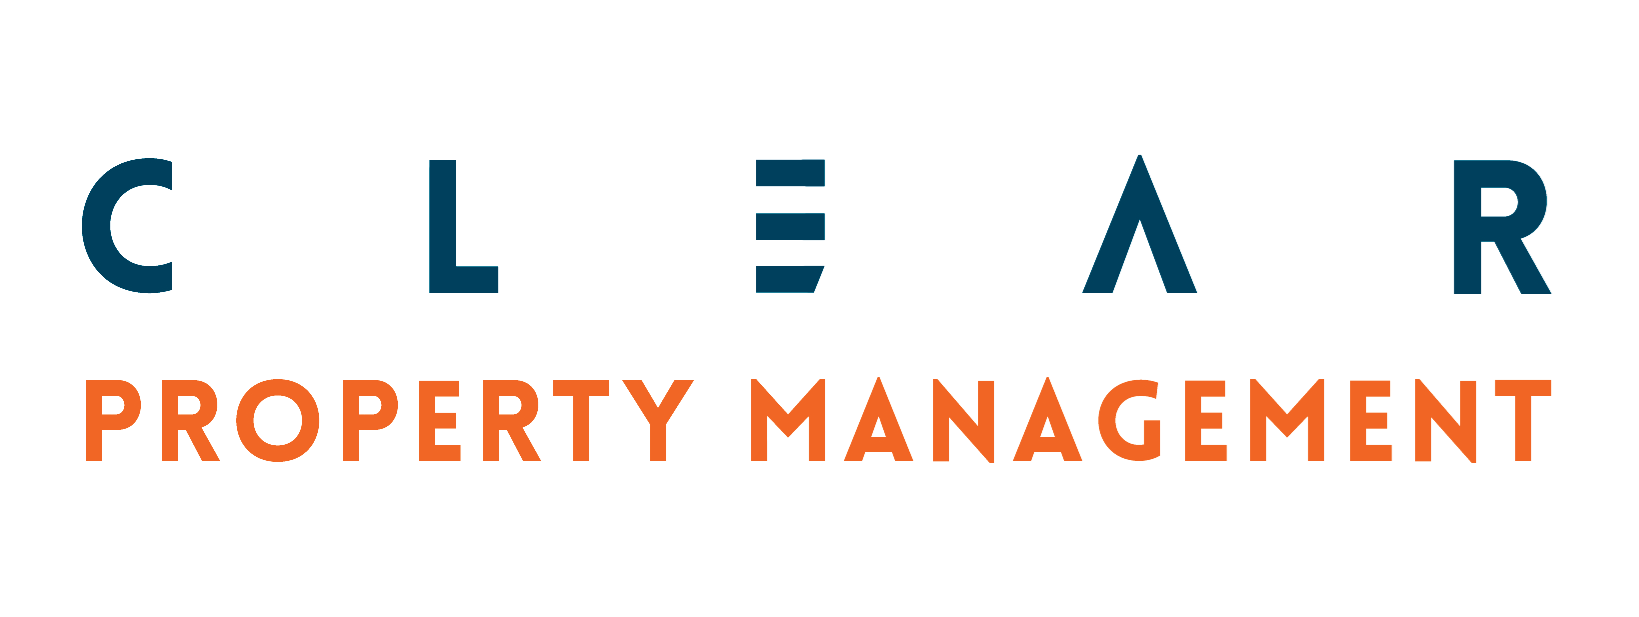 CLEAR Property Management Property Logo 1